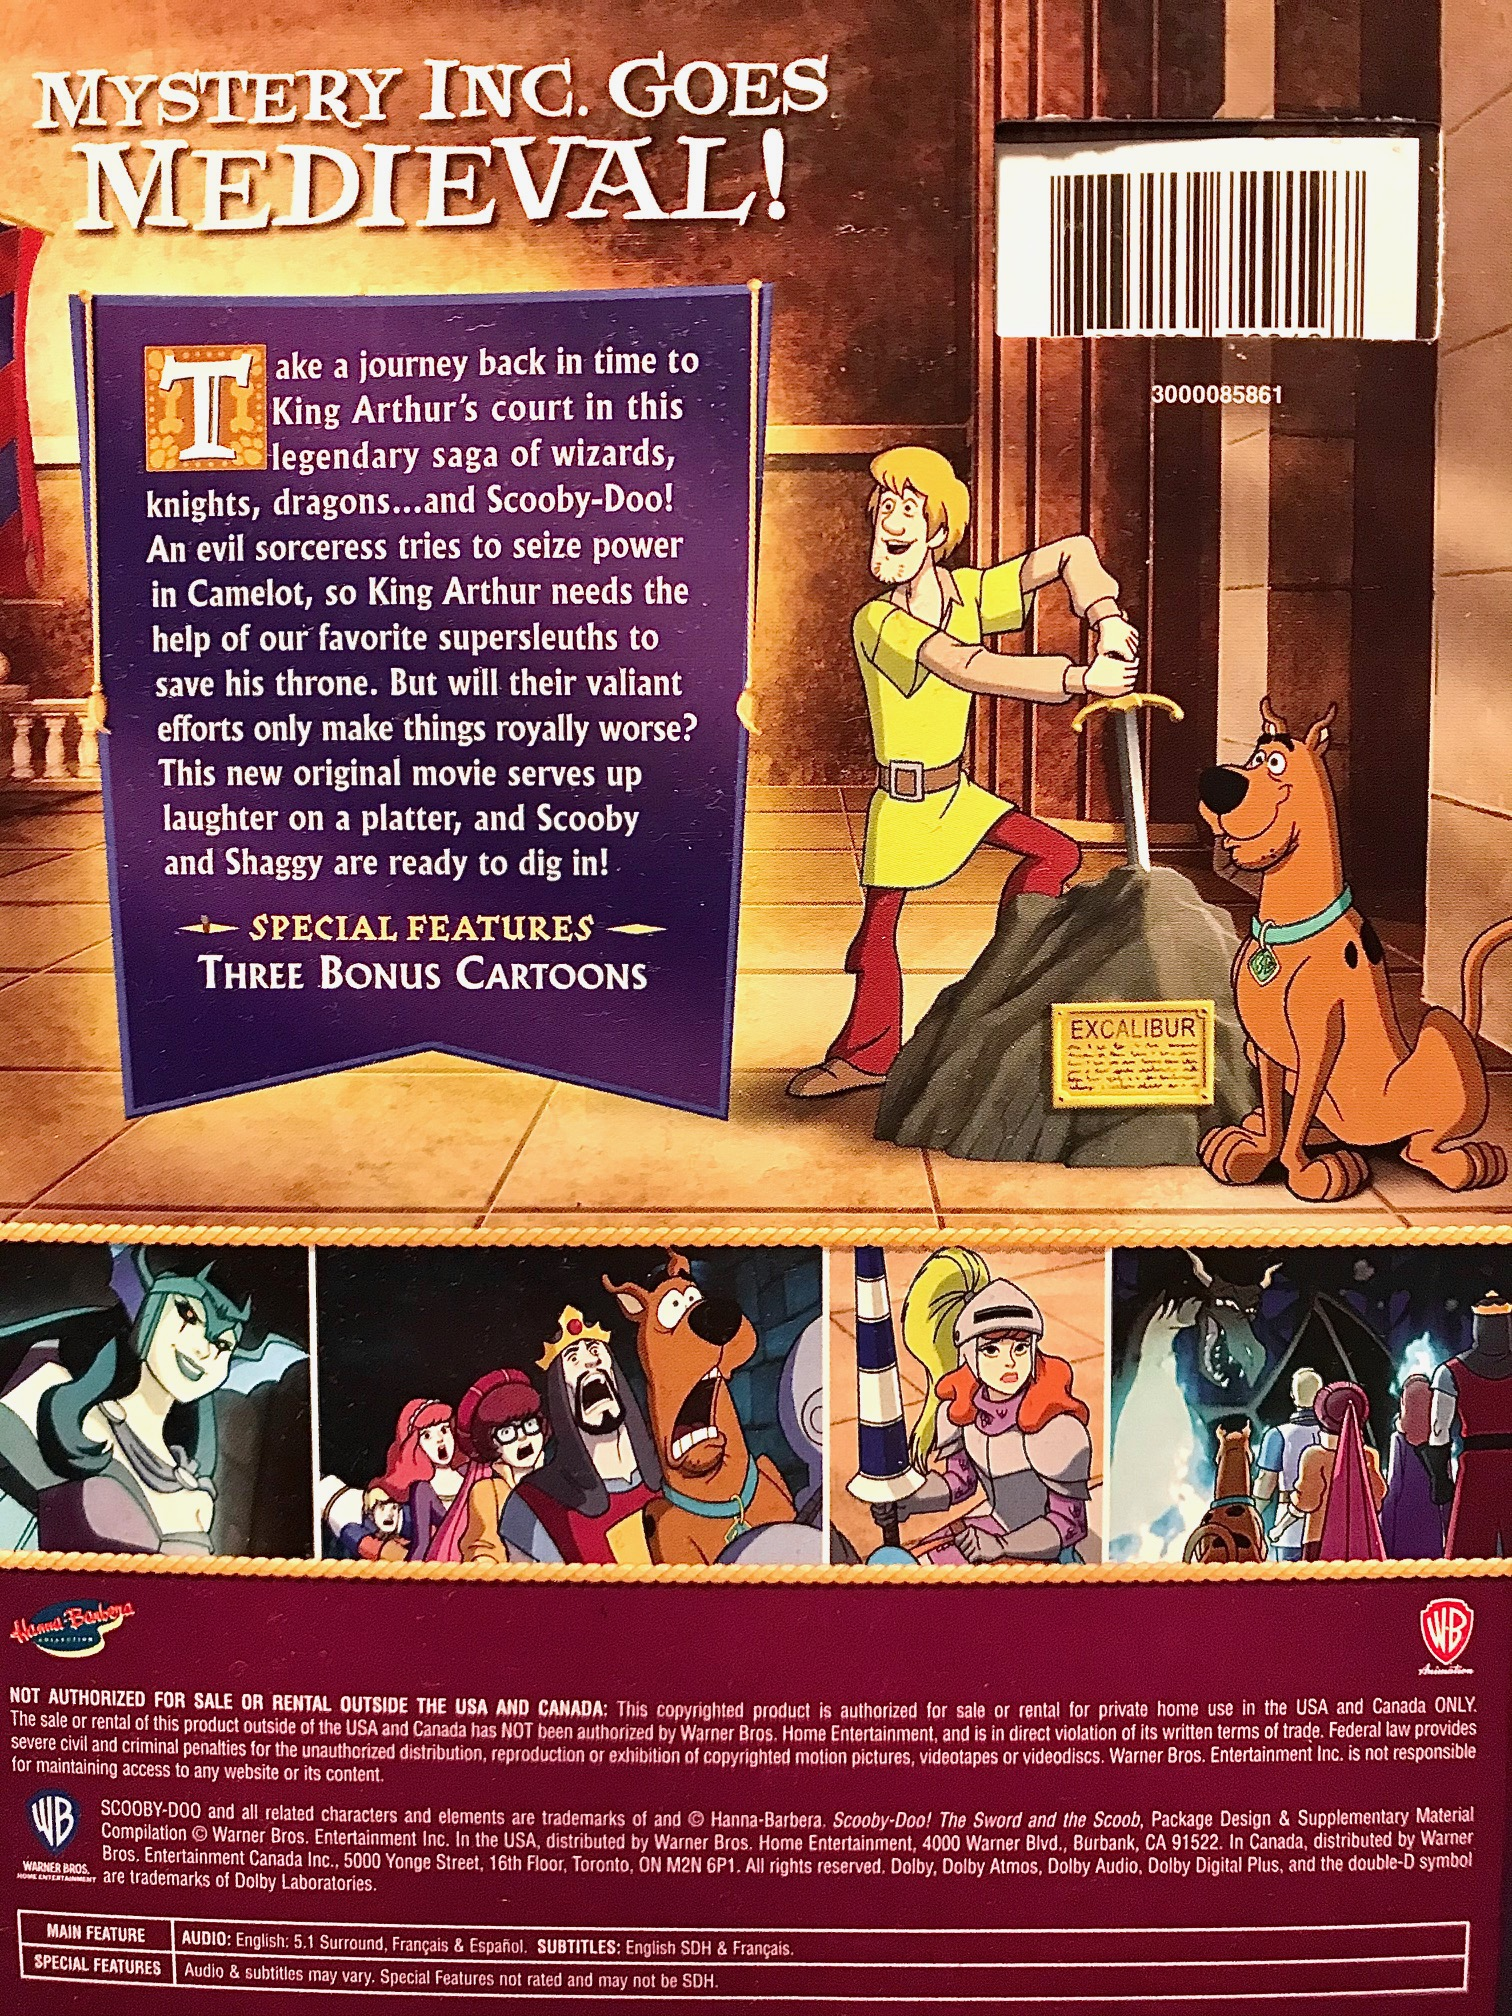 Scooby-Doo, The Sword and the Scoob